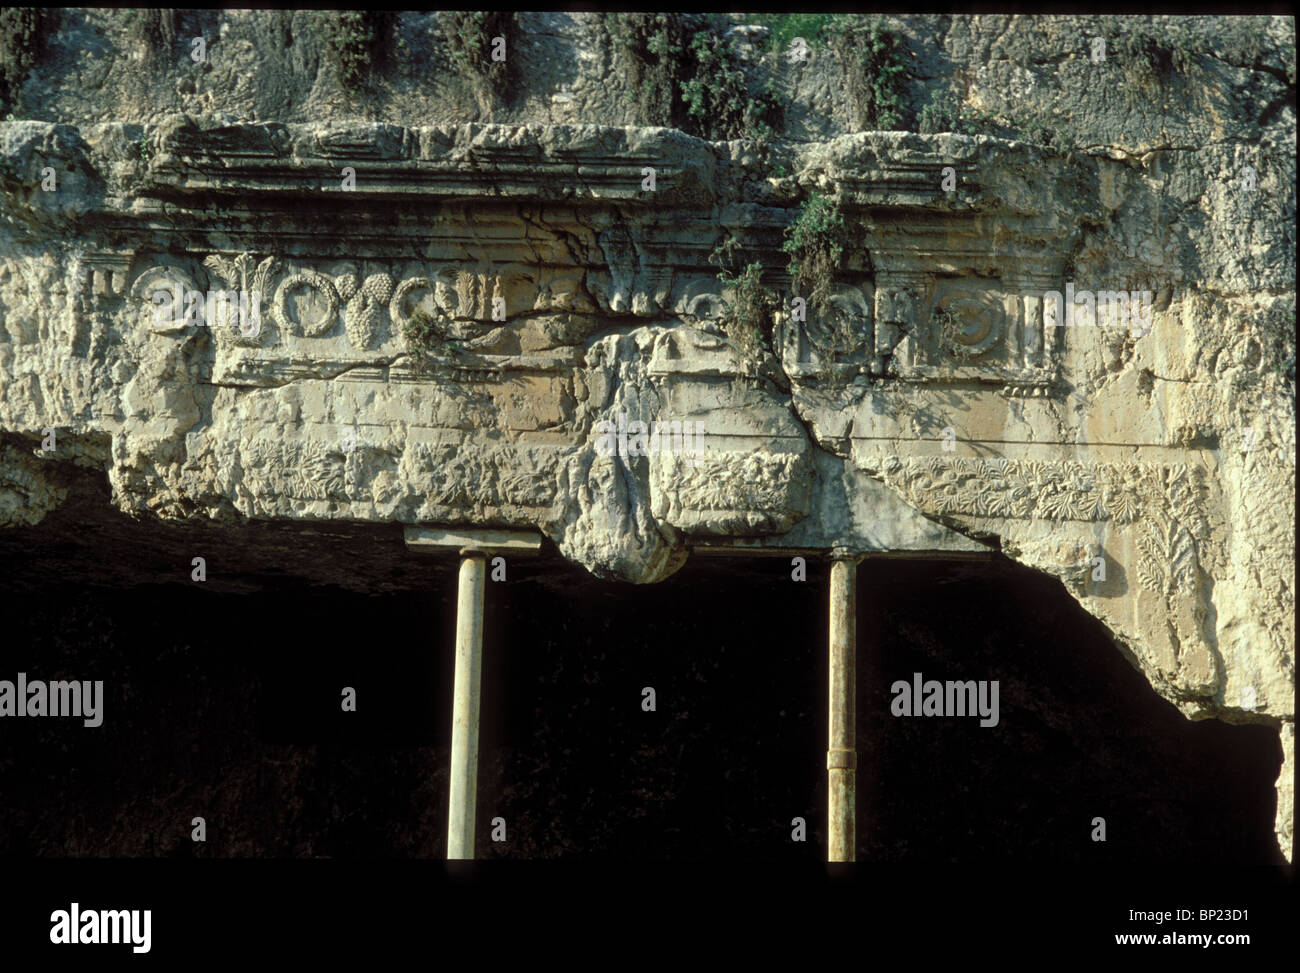 169. TOMBS OF THE KINGS, ROCK HEWN TOMBS IN JERUSALEM BUILT IN THE IST. C. AD. BY QUEEN HELENA. - Stock Image